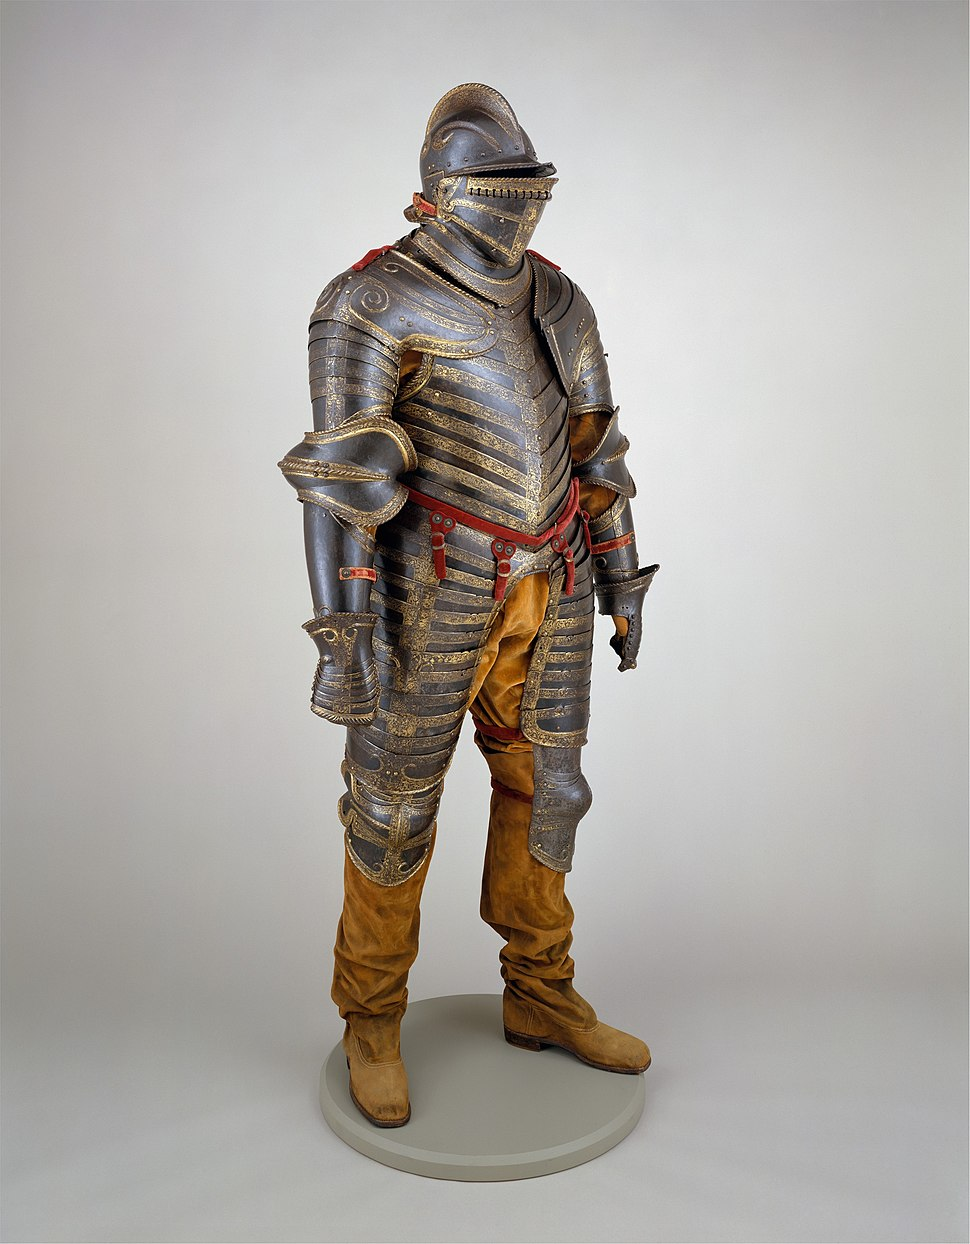 Field Armor of King Henry VIII of England (reigned 1509%E2%80%9347) MET DT205963